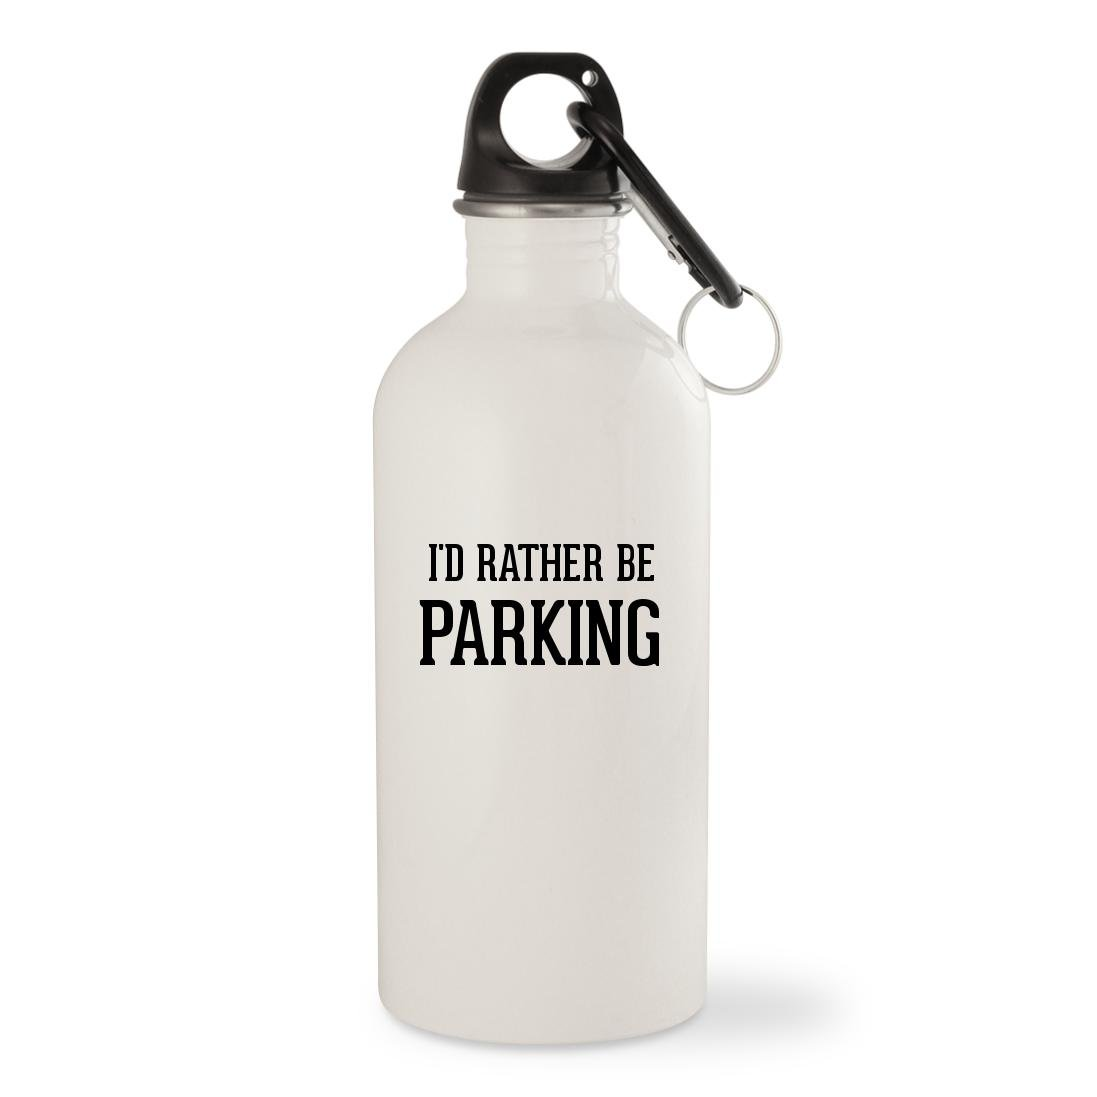 I'd Rather Be PARKING - White 20oz Stainless Steel Water Bottle with Carabiner